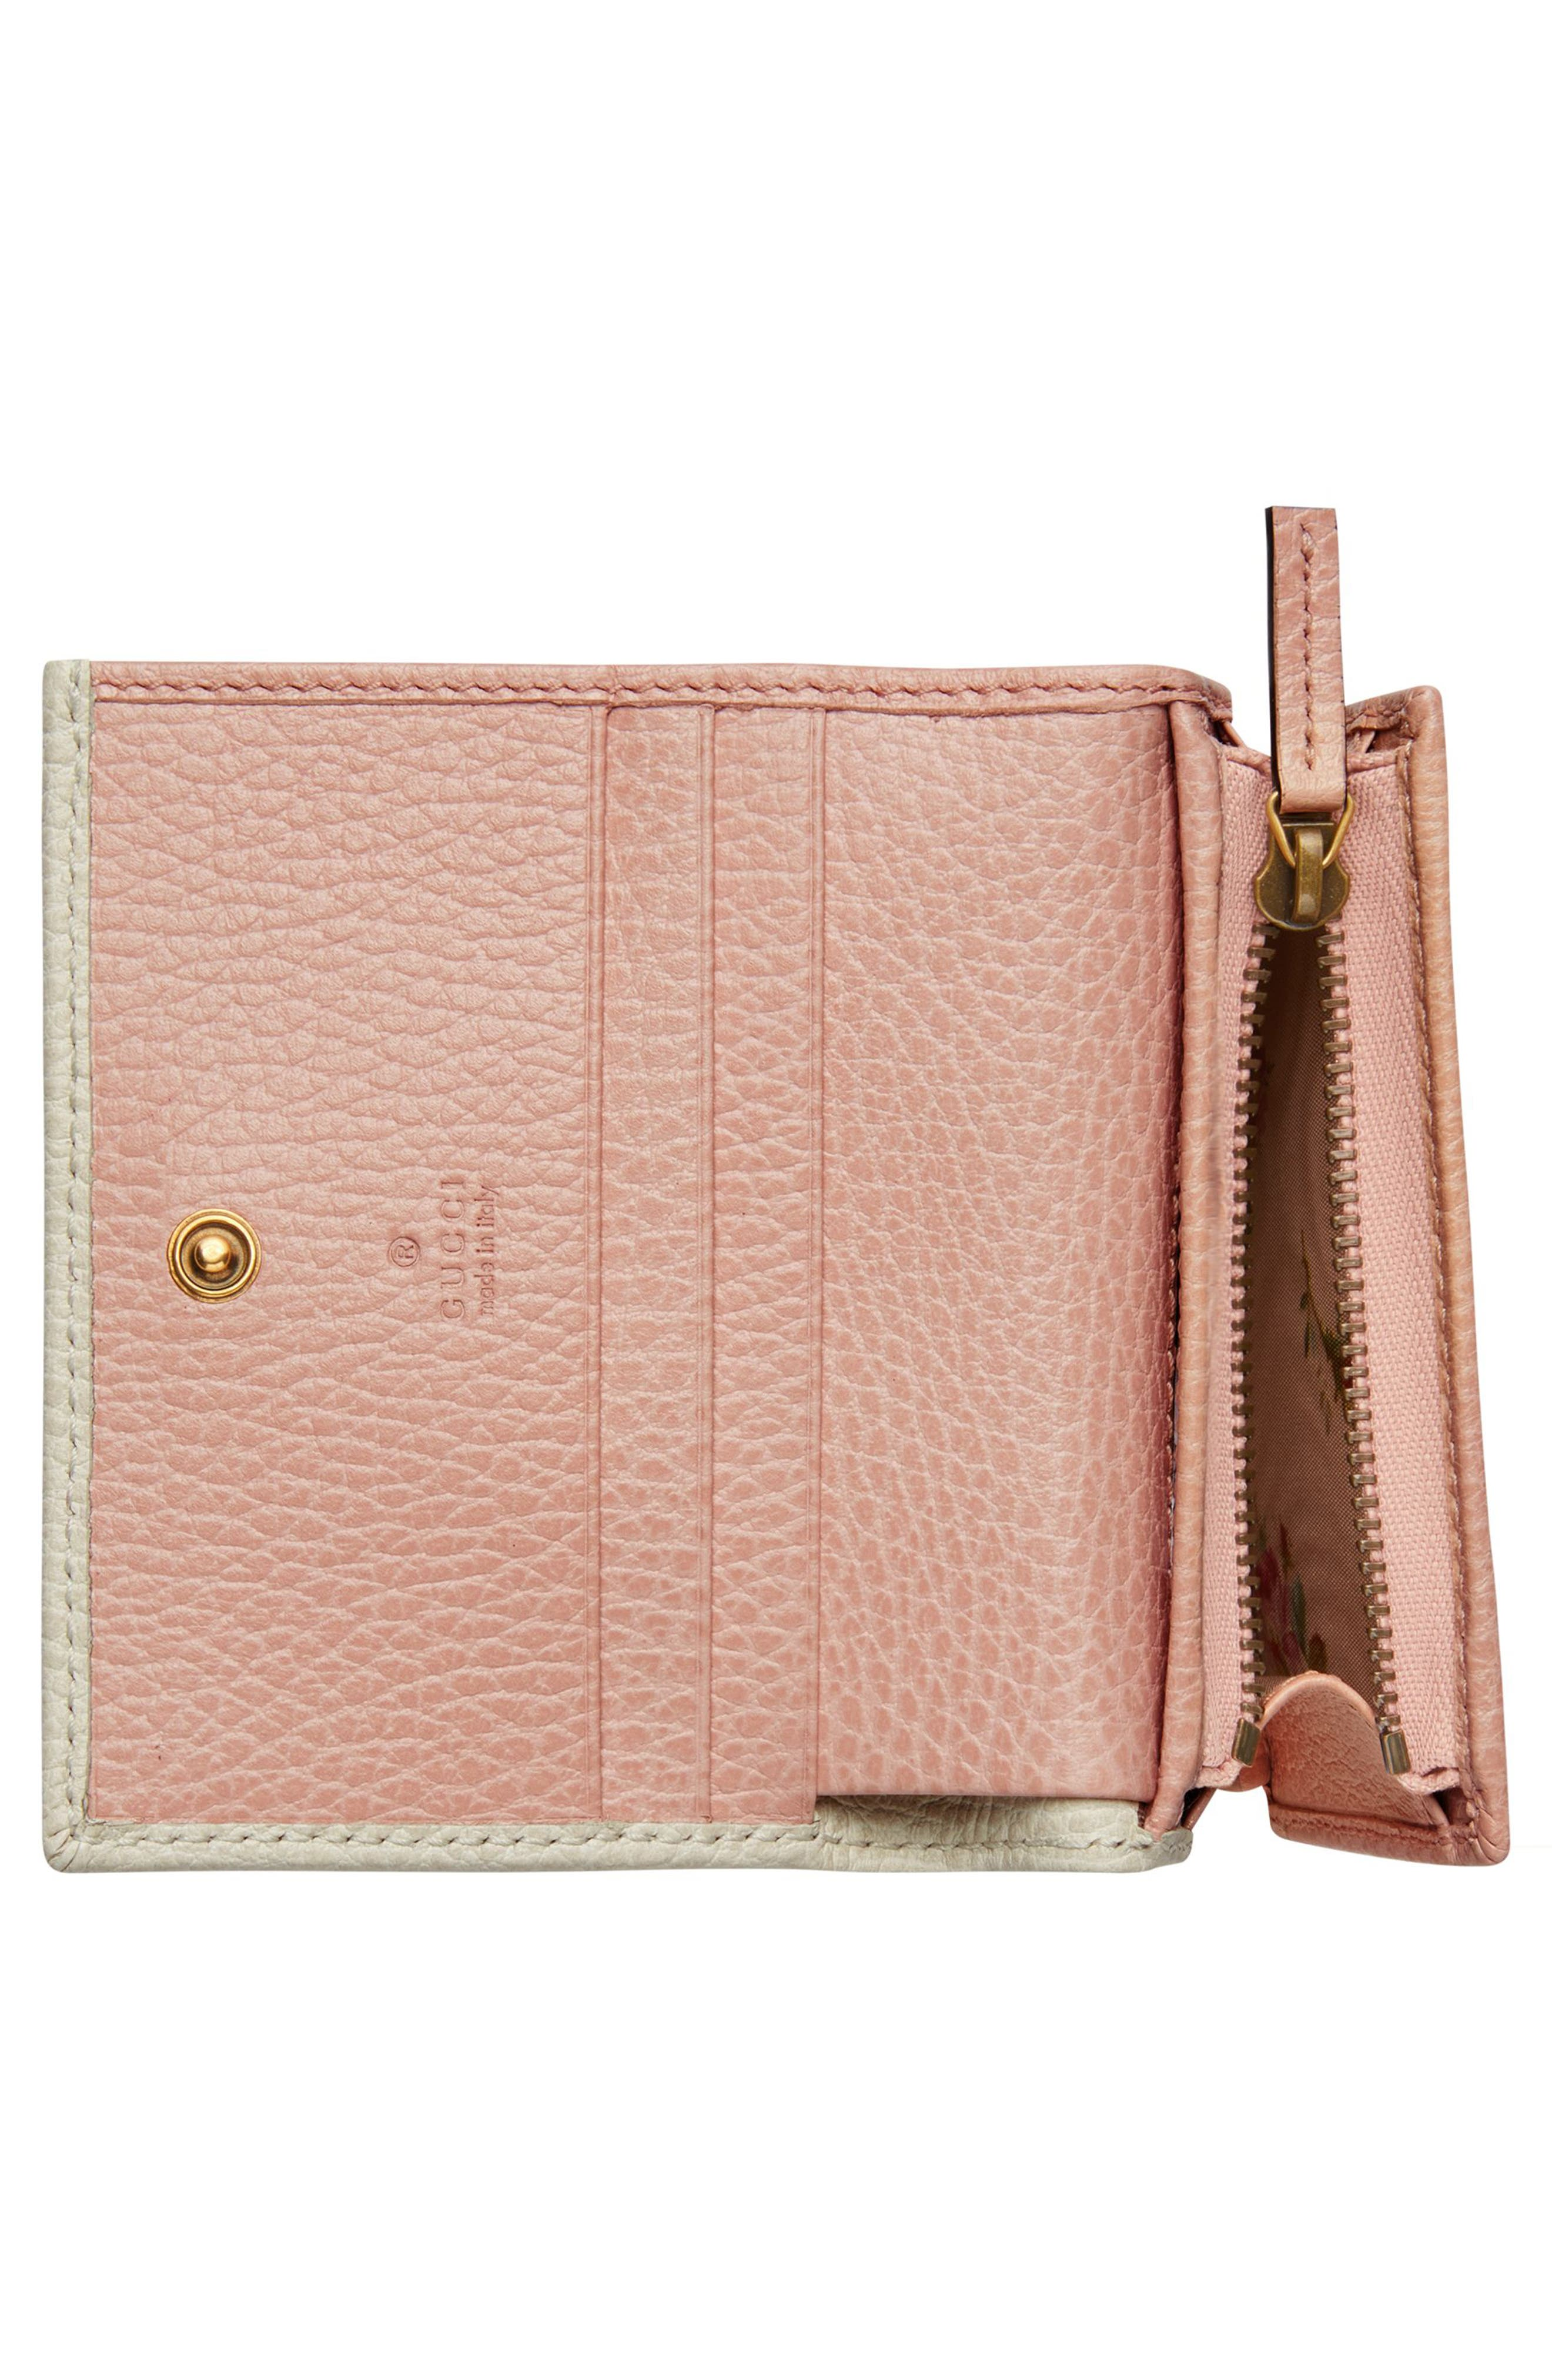 Fiocchino Leather Card Case,                             Alternate thumbnail 2, color,                             Mystic White/ Pink/ Crystal